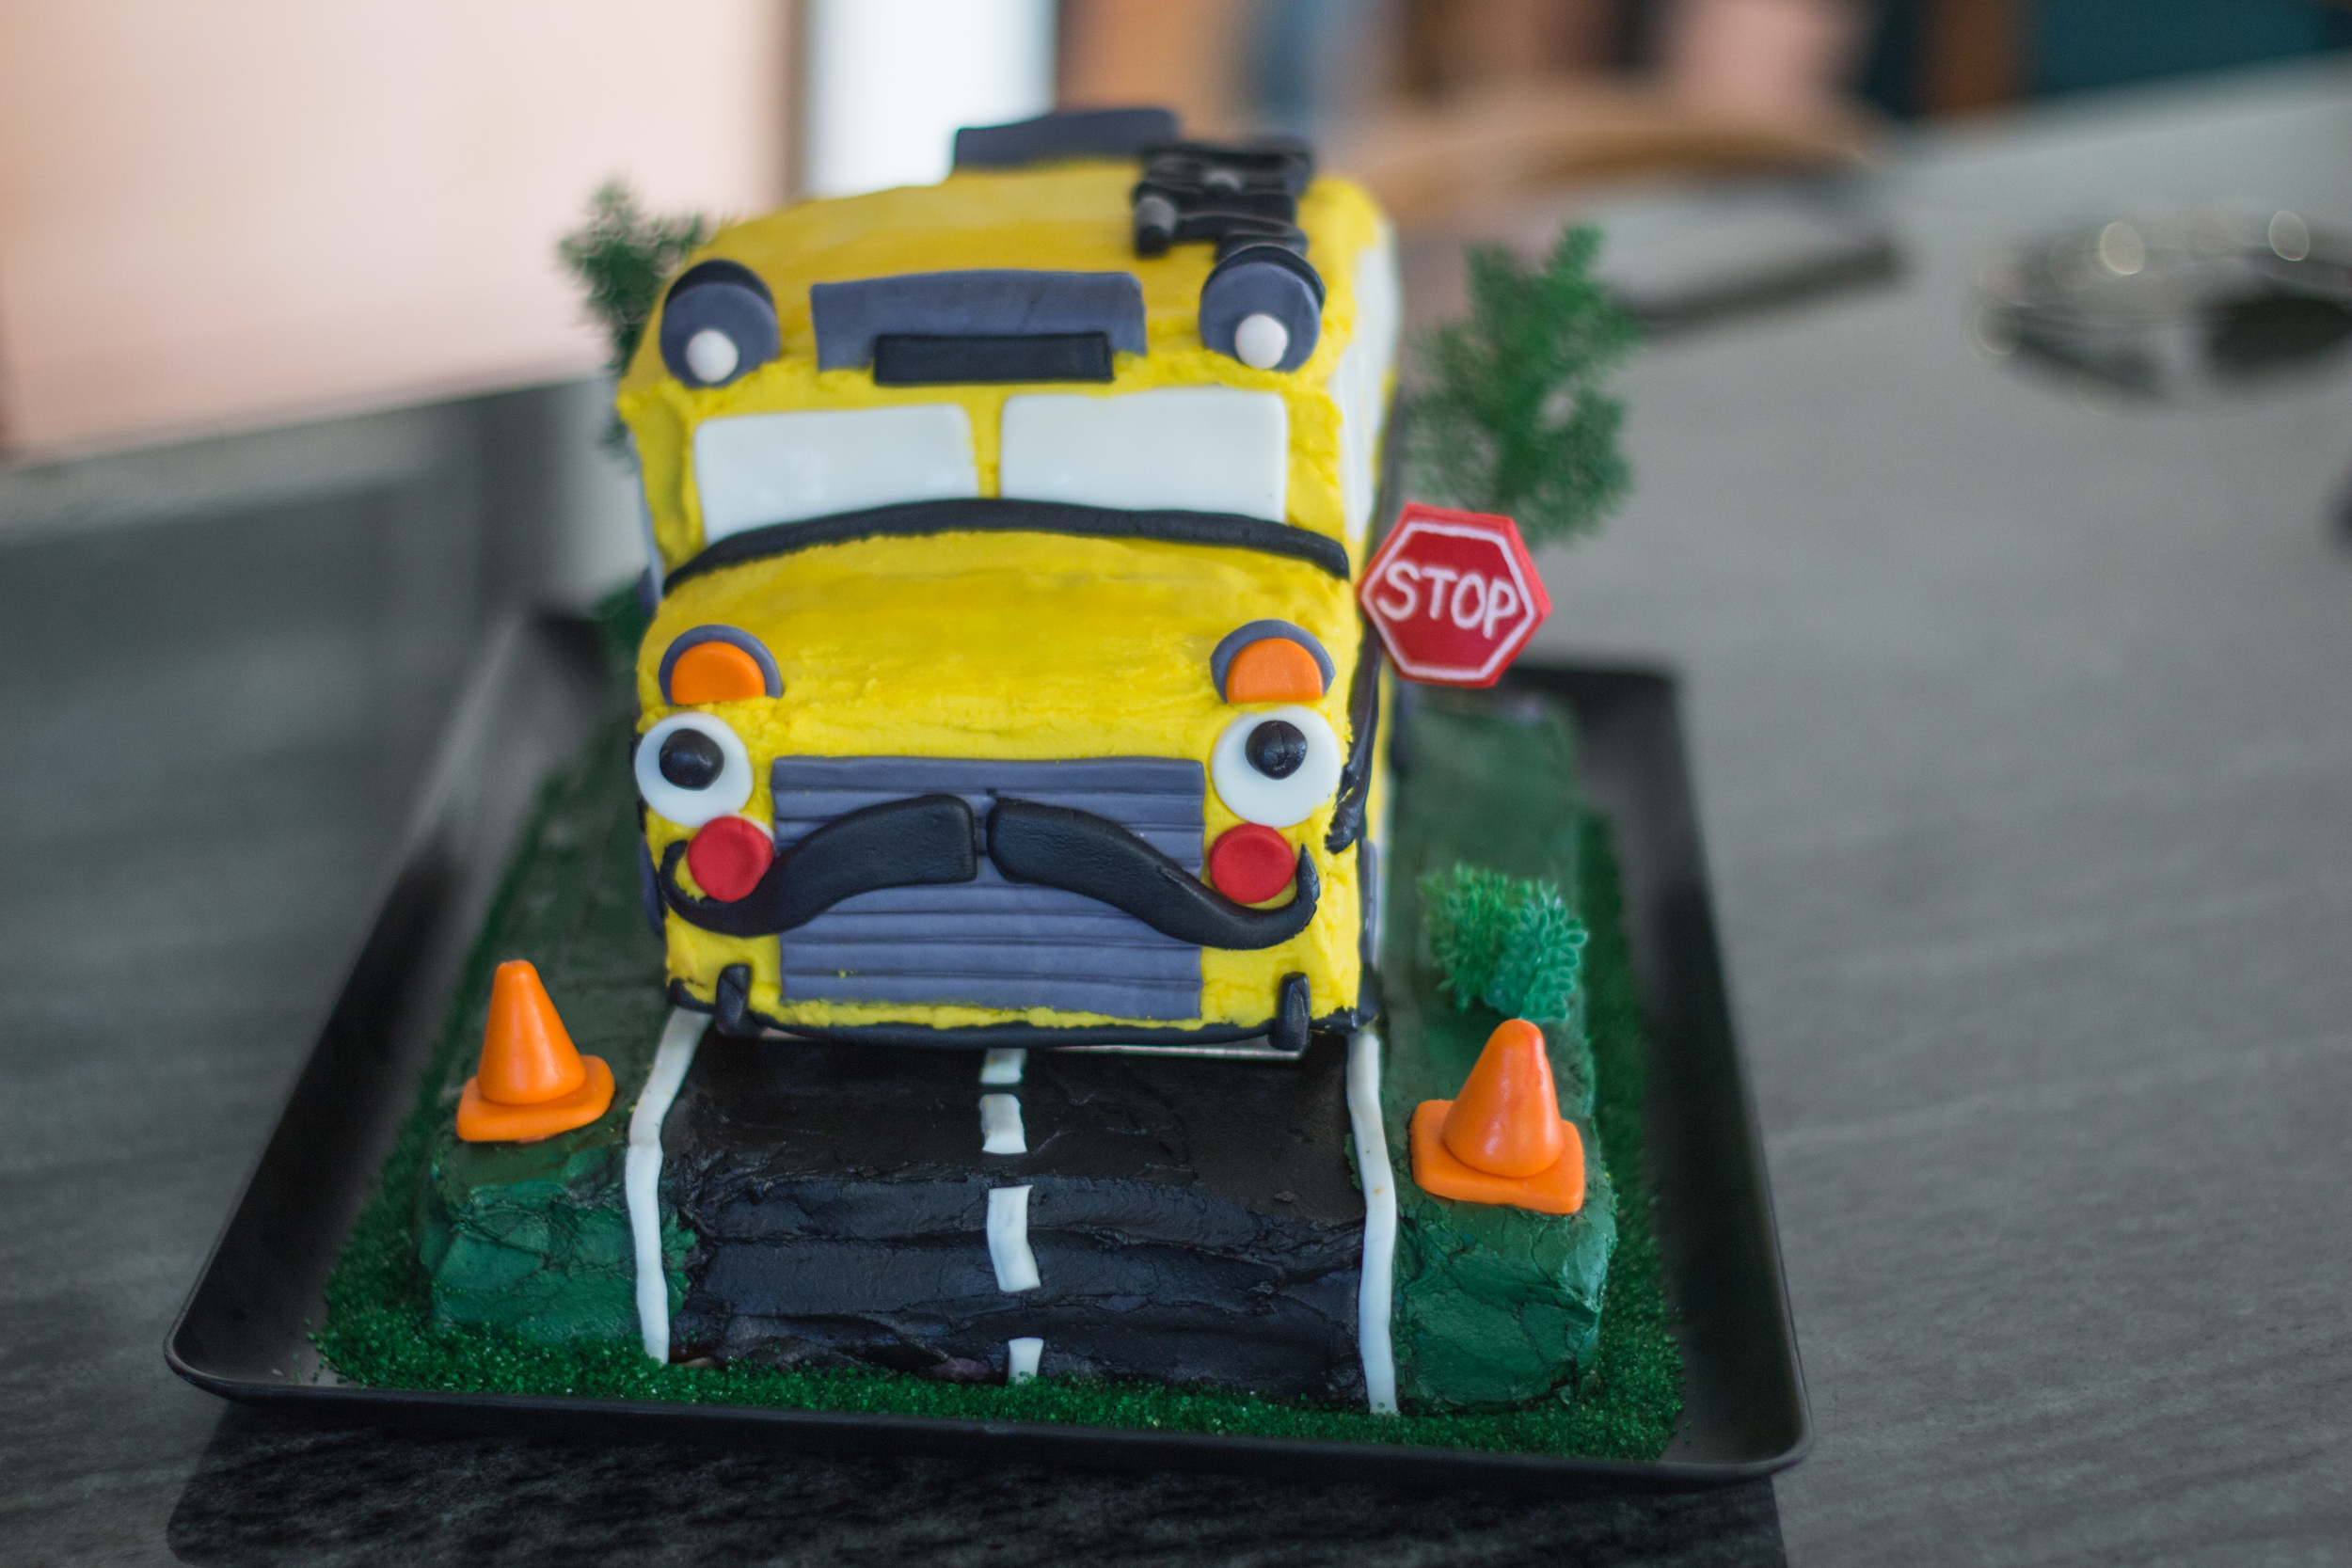 Amazing Wheels on the Bus Cake!